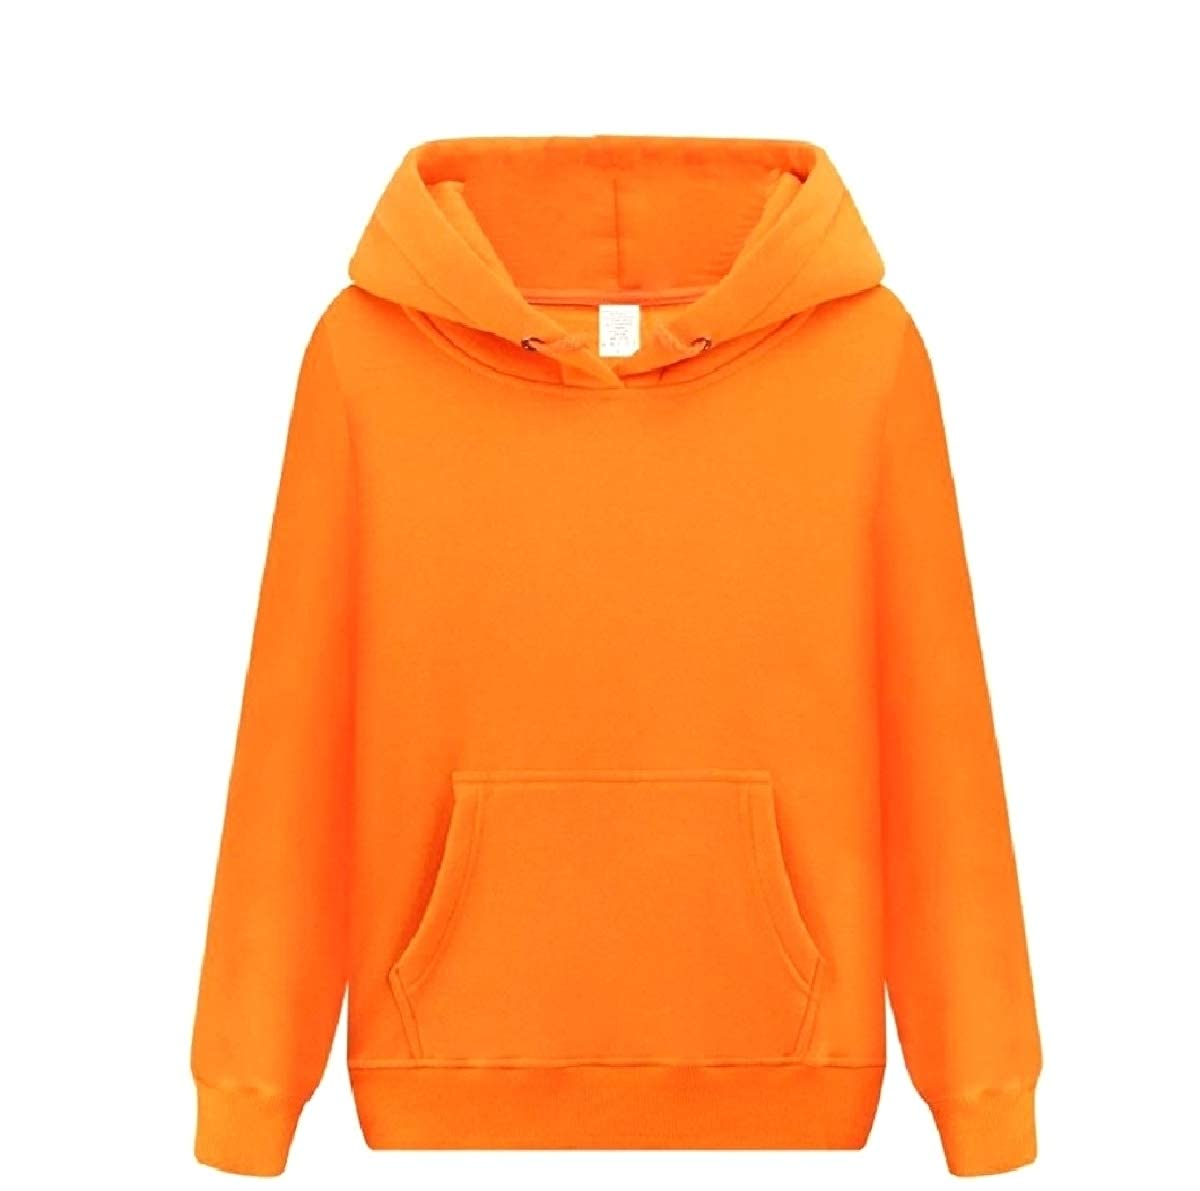 YUNY Mens with Pockets Pea Coat Solid Color Thickened Hoodies Sweater Orange XL